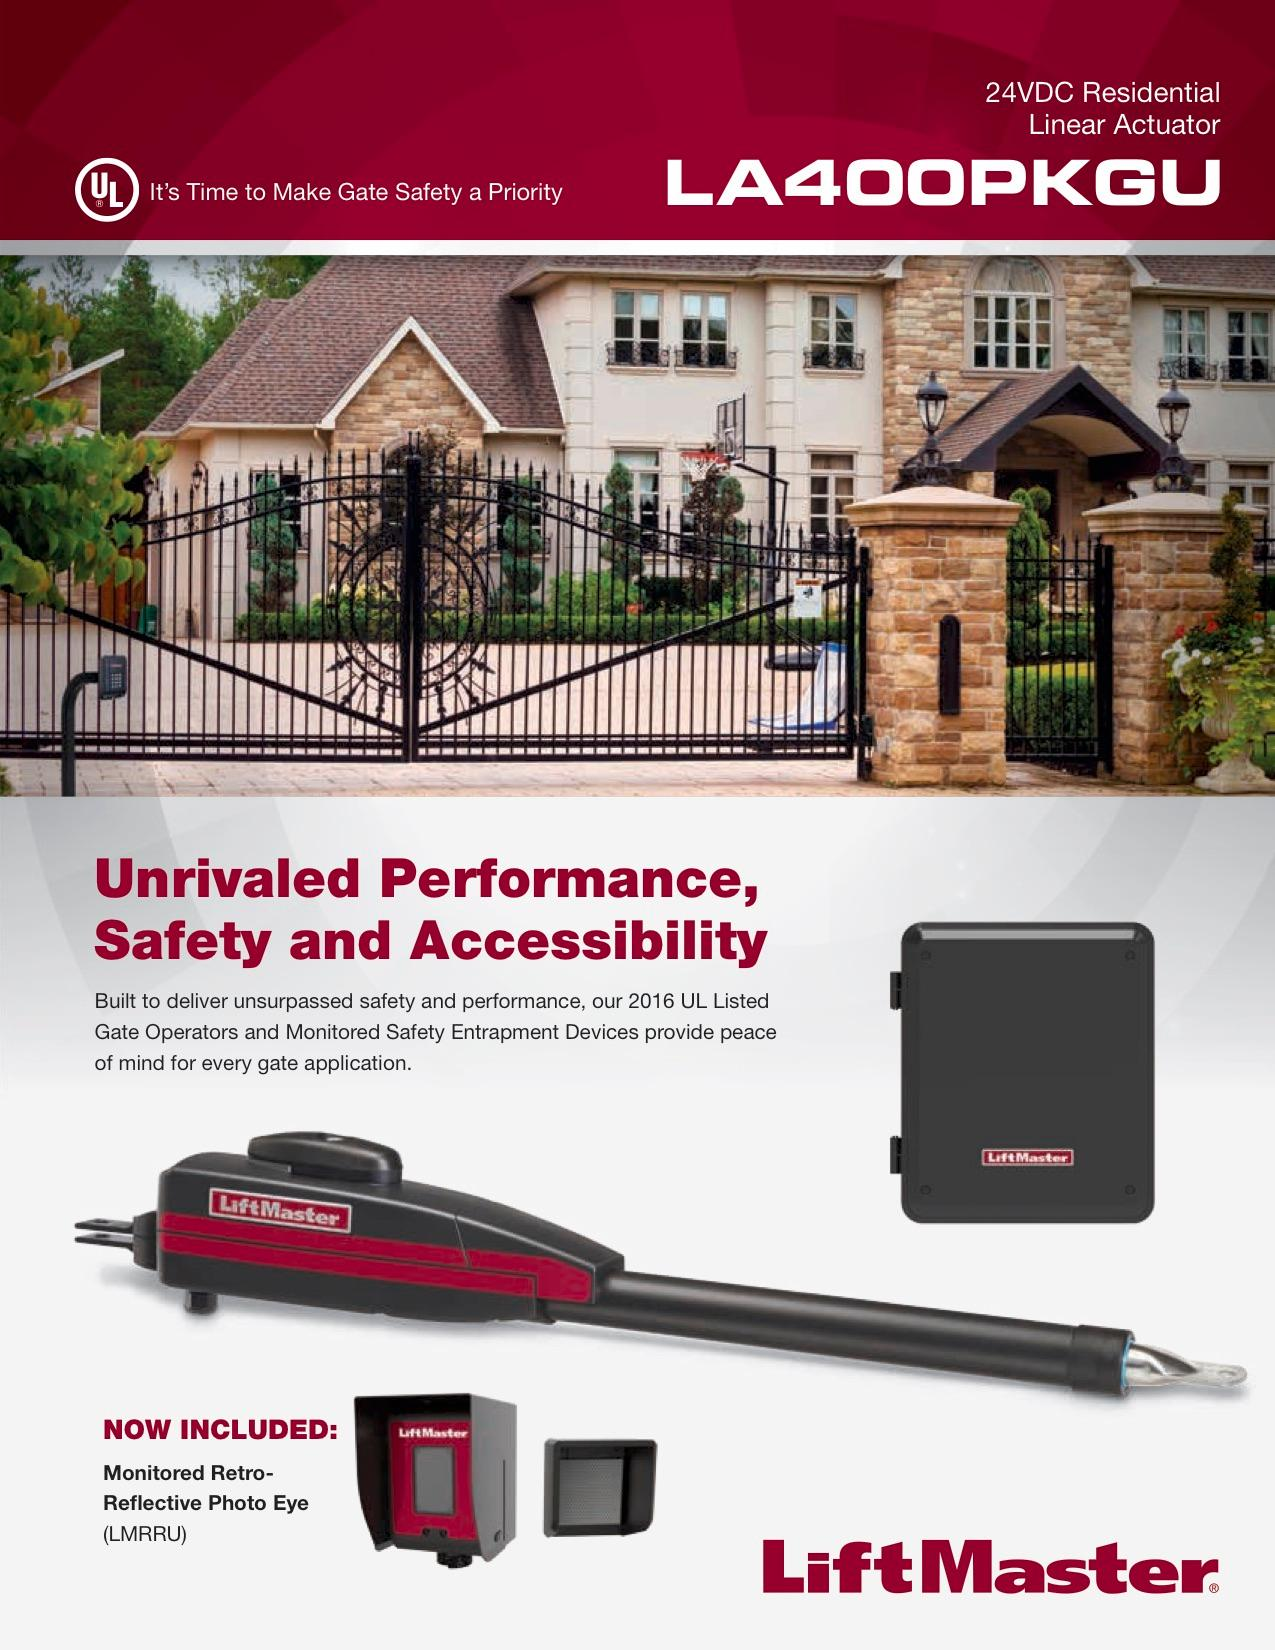 Liftmaster brochure